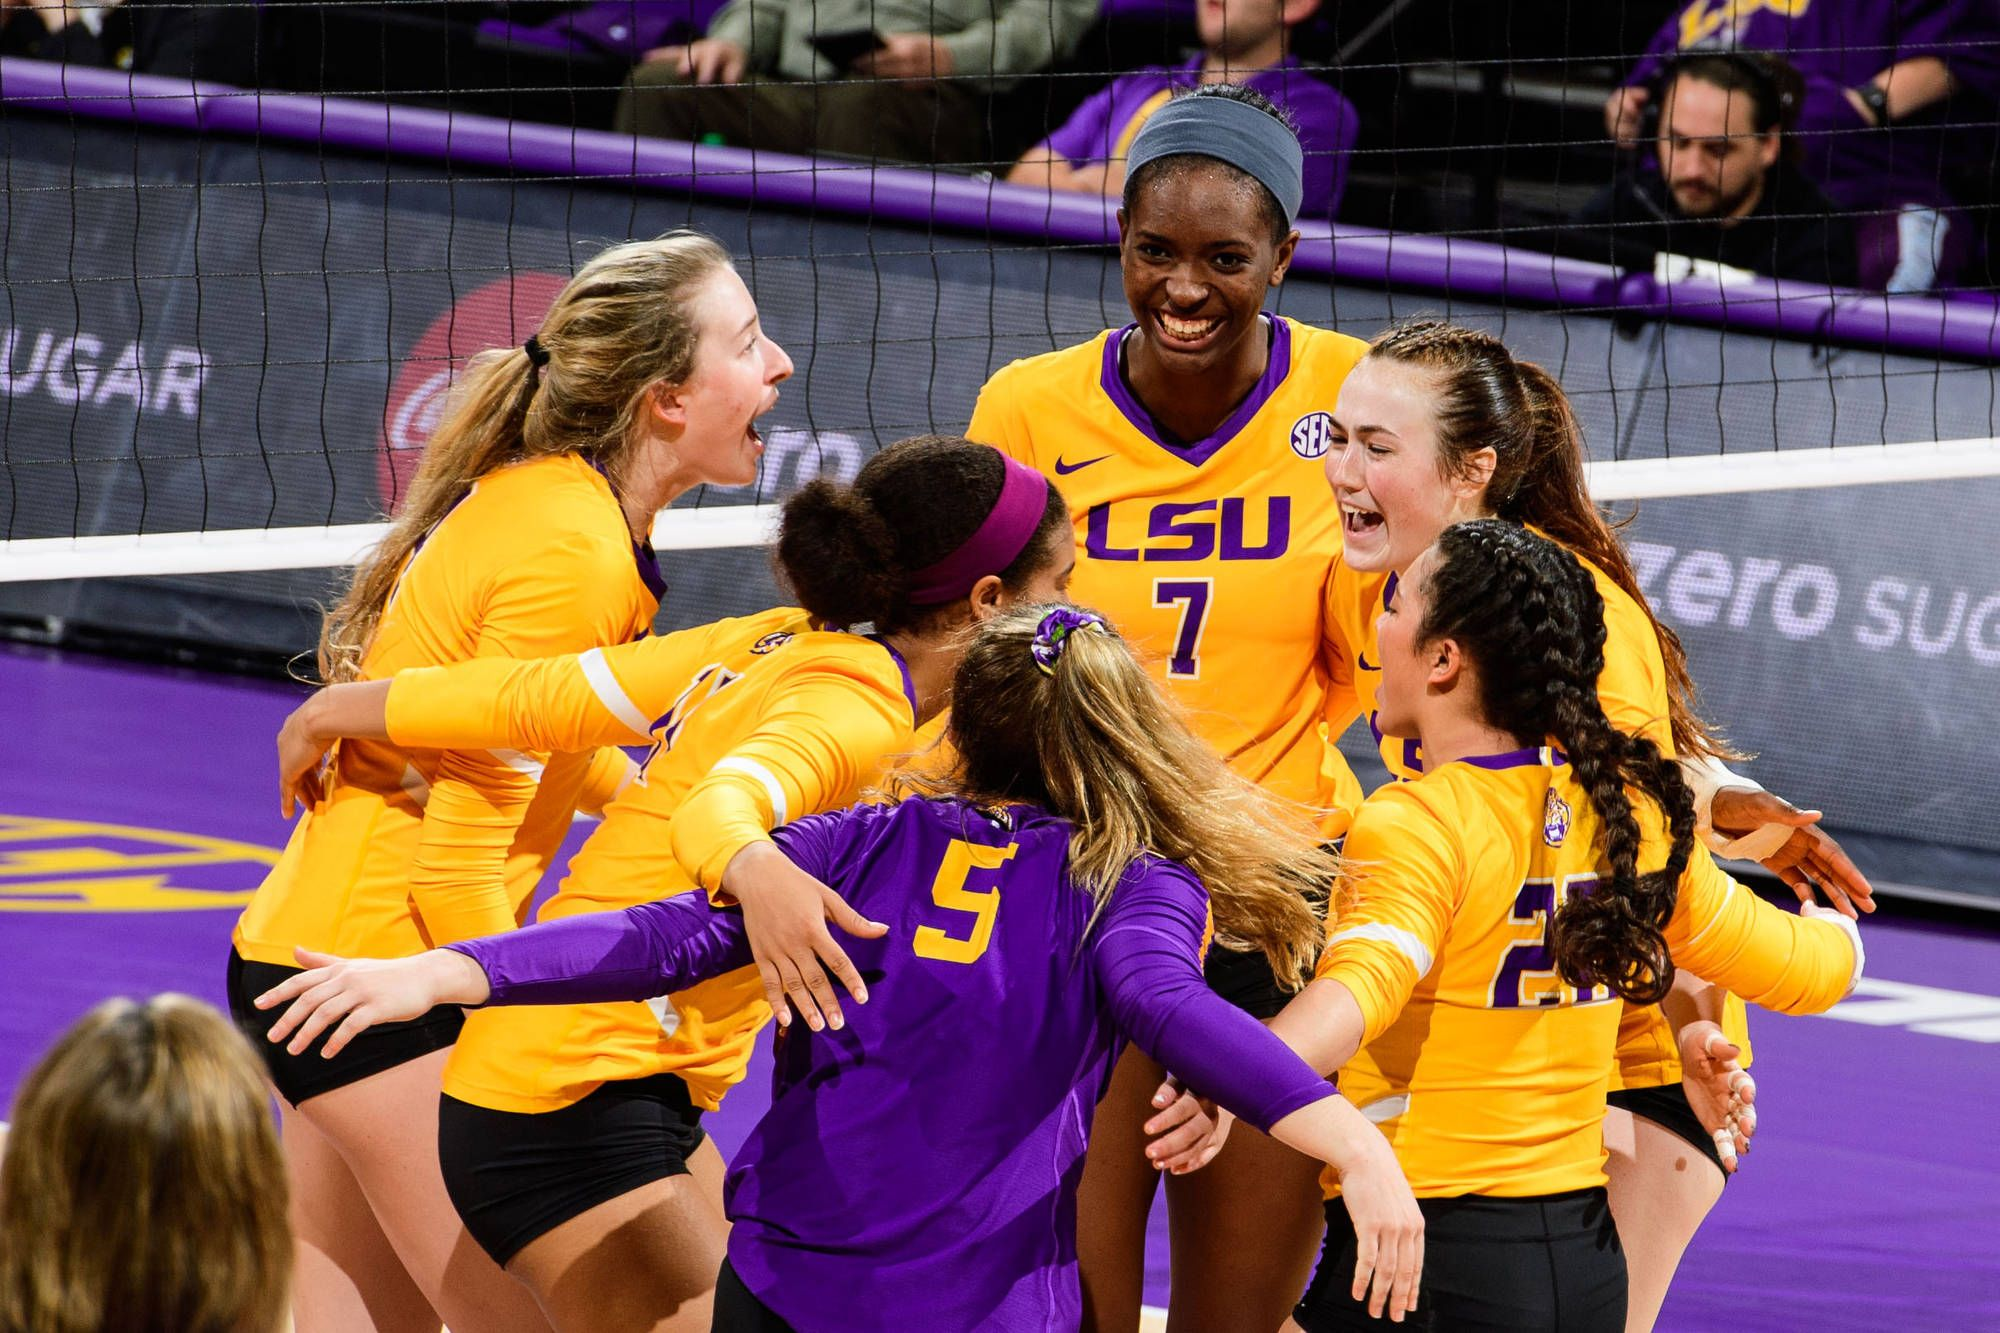 Lsu Volleyball Faces Texas A M In Final Match Lsu Volleyball Match